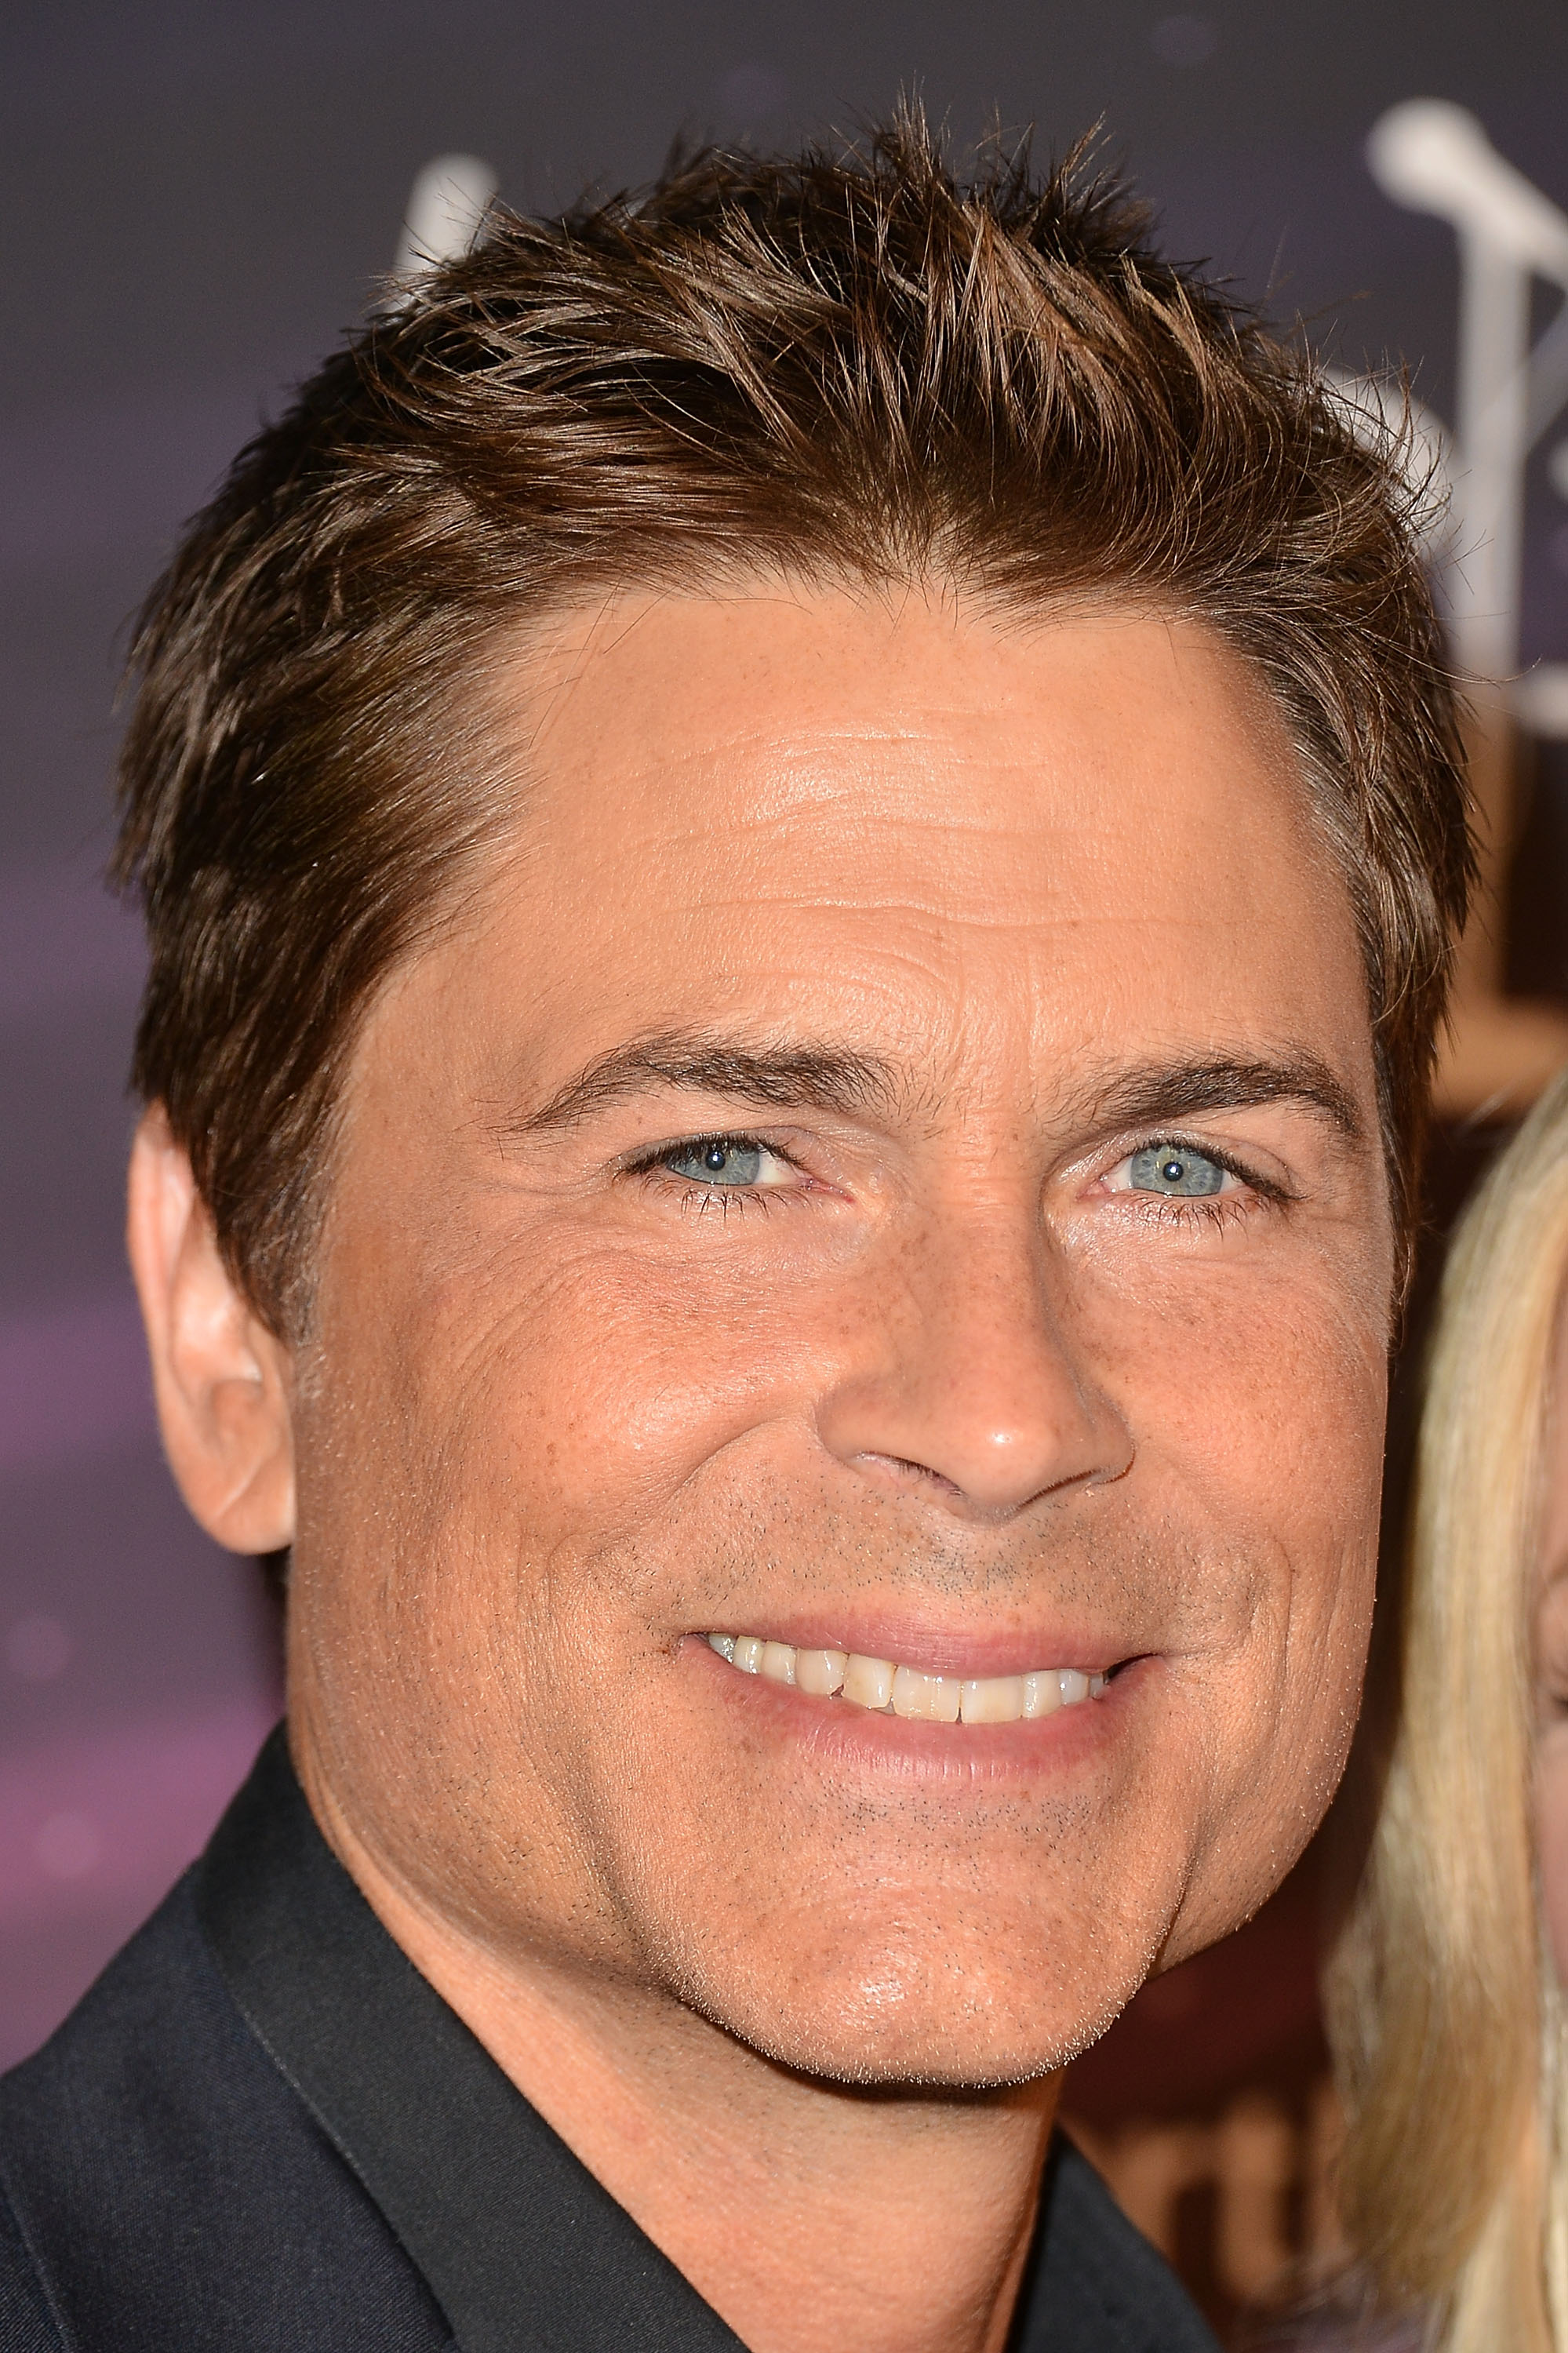 Rob Lowe attends the 3rd Annual Hilarity for Charity Variety Show to benefit the Alzheimer's Association, presented by Genworth at Hollywood Palladium on October 17, 2014 in Hollywood, California.